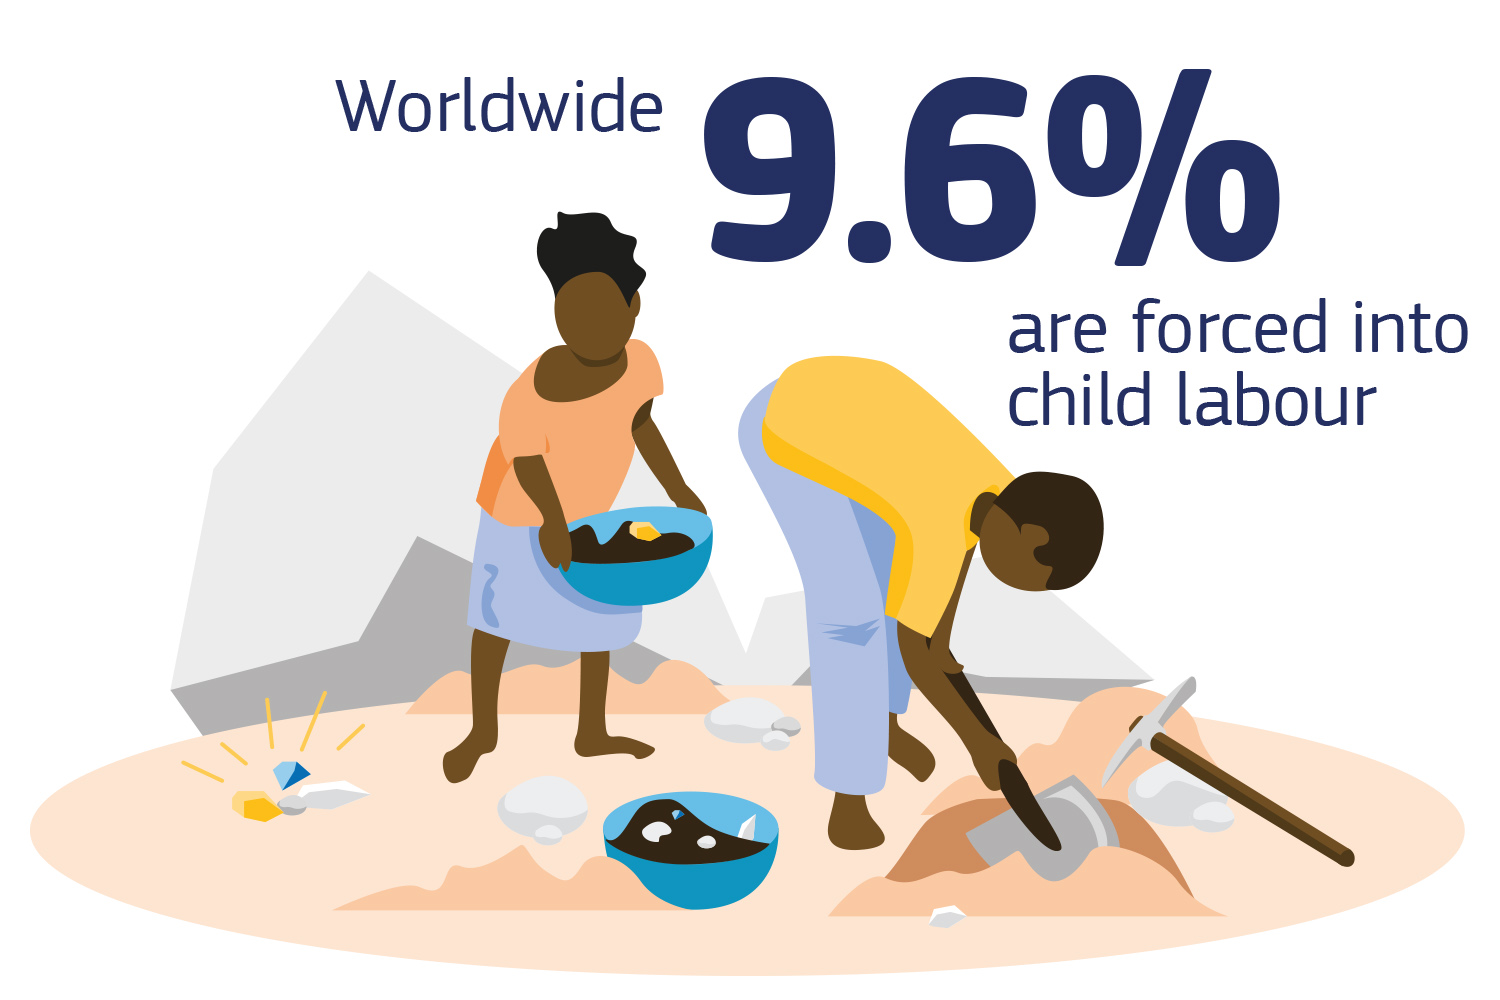 Worldwide 9.6% of children are forced into child labour